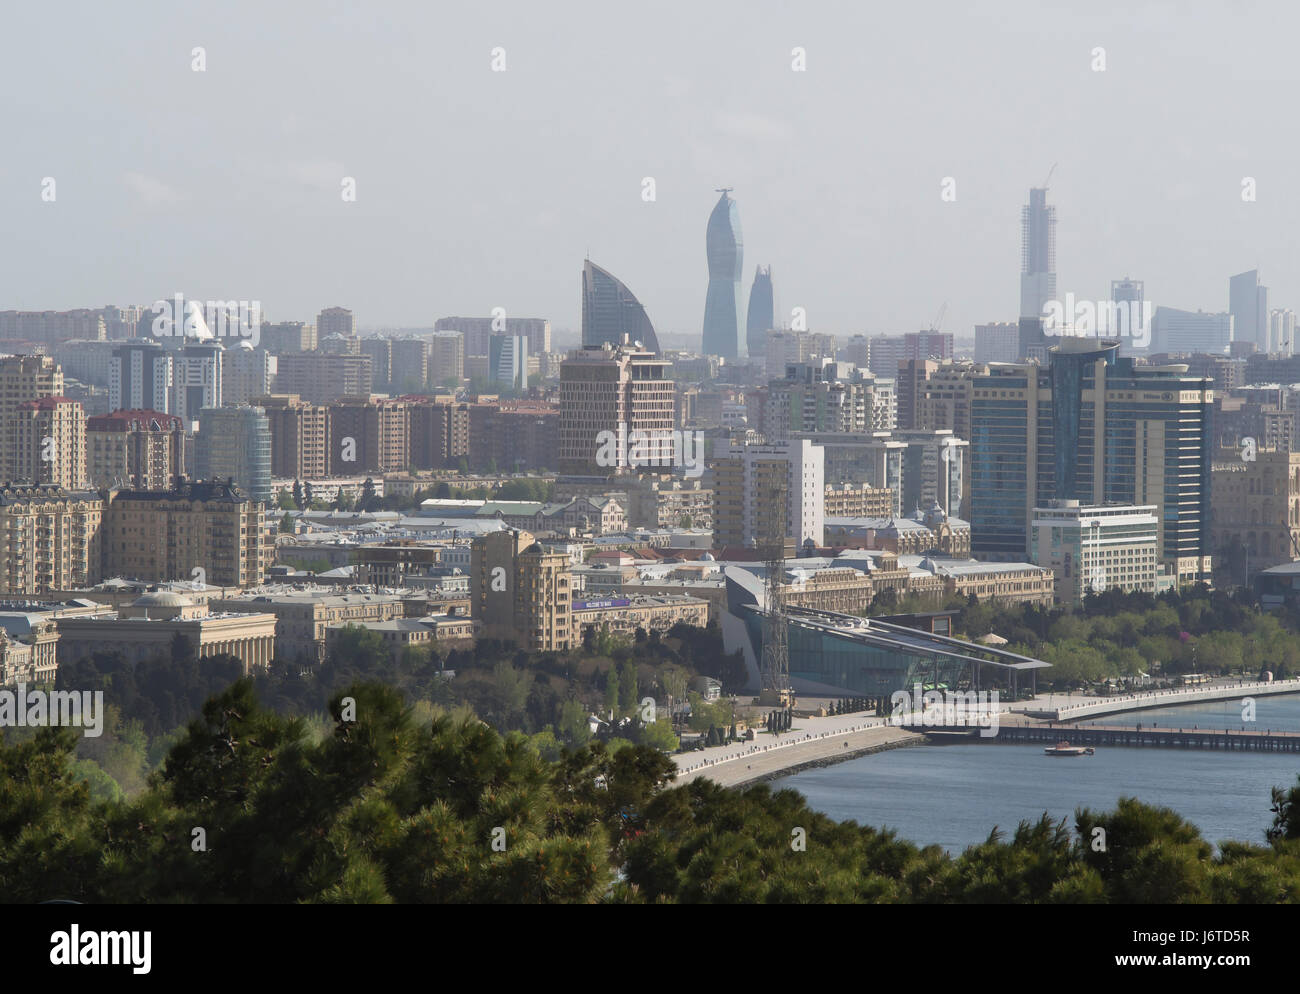 Baku, the capital city of Azerbaijan, on the shore of the Caspian sea, view of  city centre and seaside promenade - Stock Image